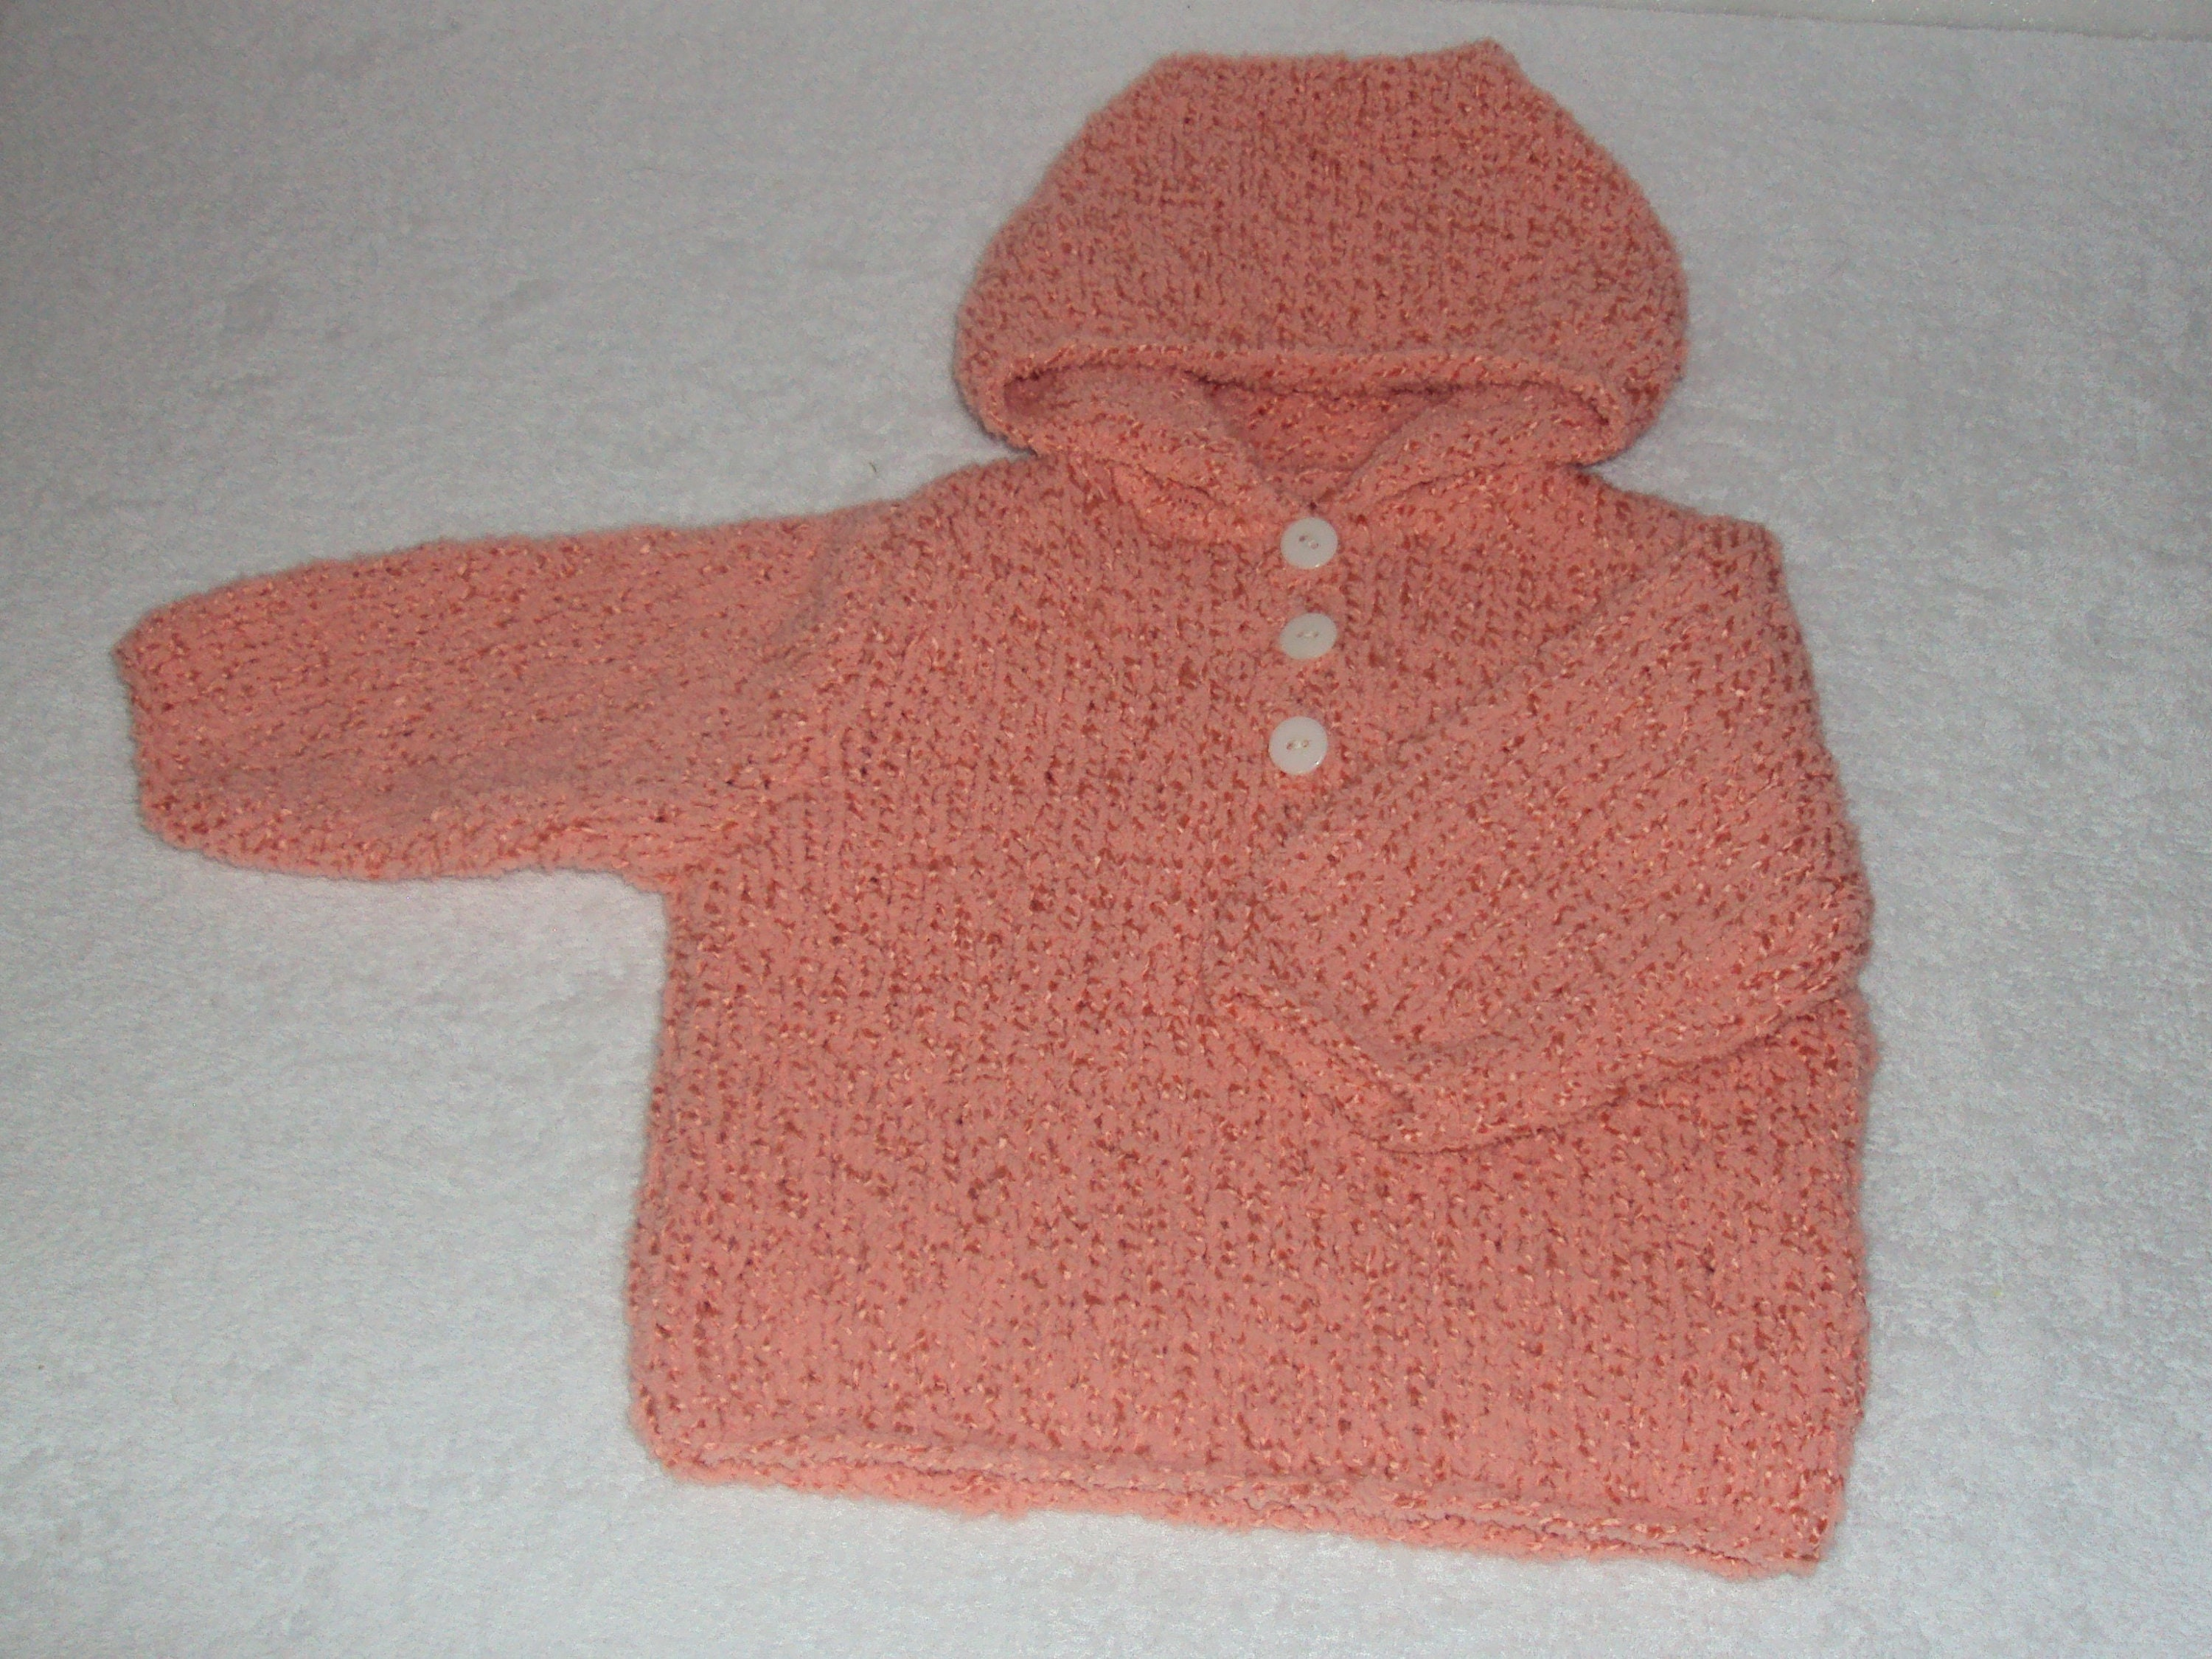 324b52138 Hooded baby sweater wool baby size 6 months salmon color